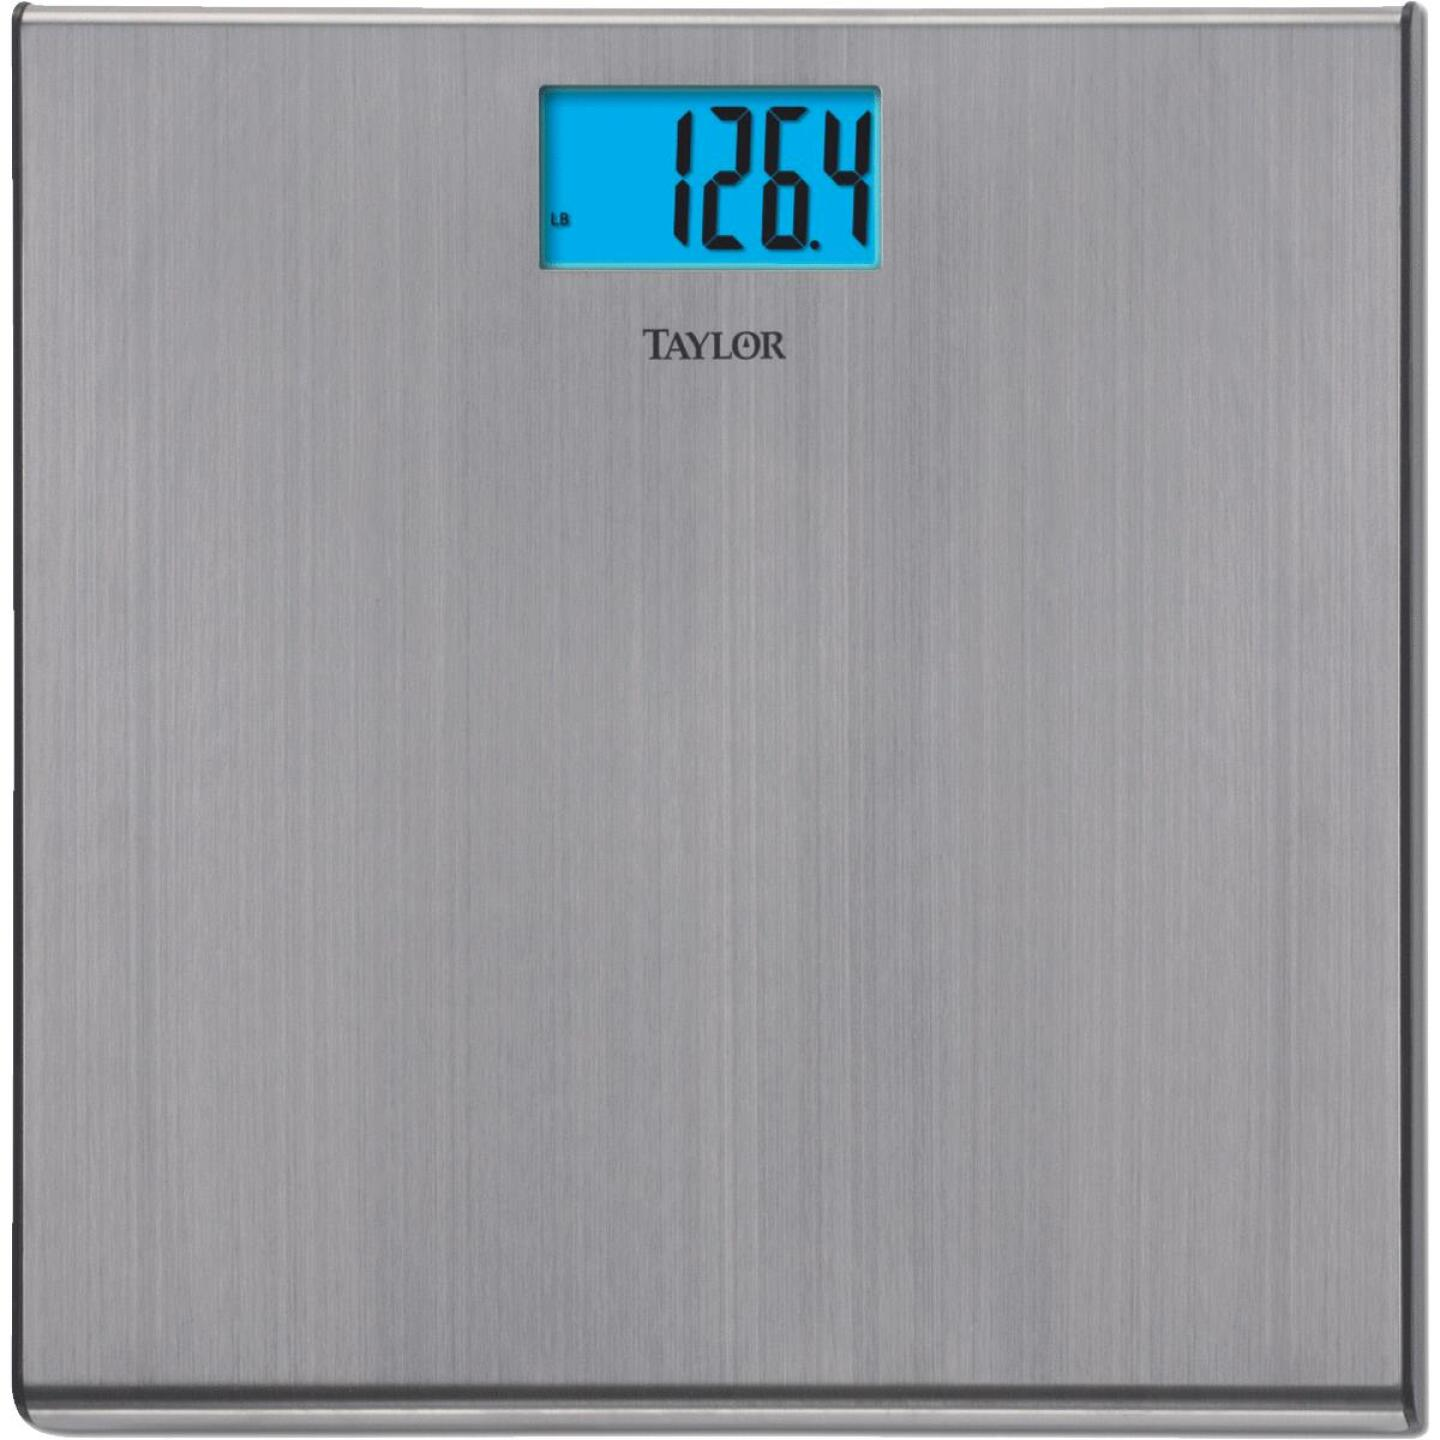 Taylor Digital 440 Lb. Stainless Steel Bath Scale, Silver Image 1